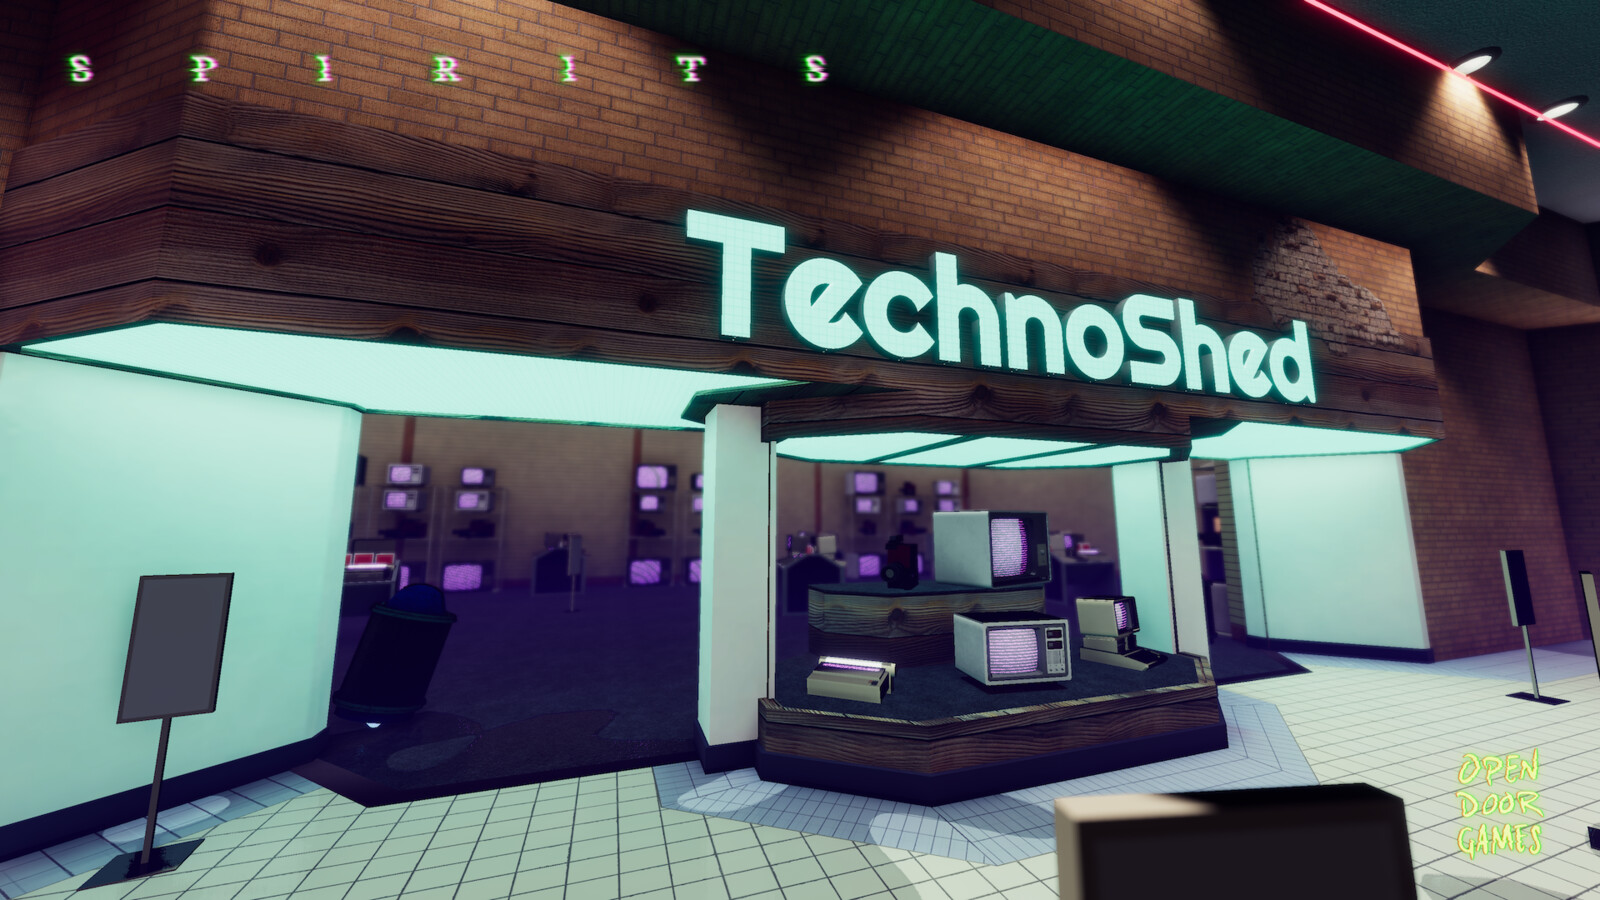 TehcnoShed's sign is based on a retro futuristic angular design style often used for mall electronics shops.